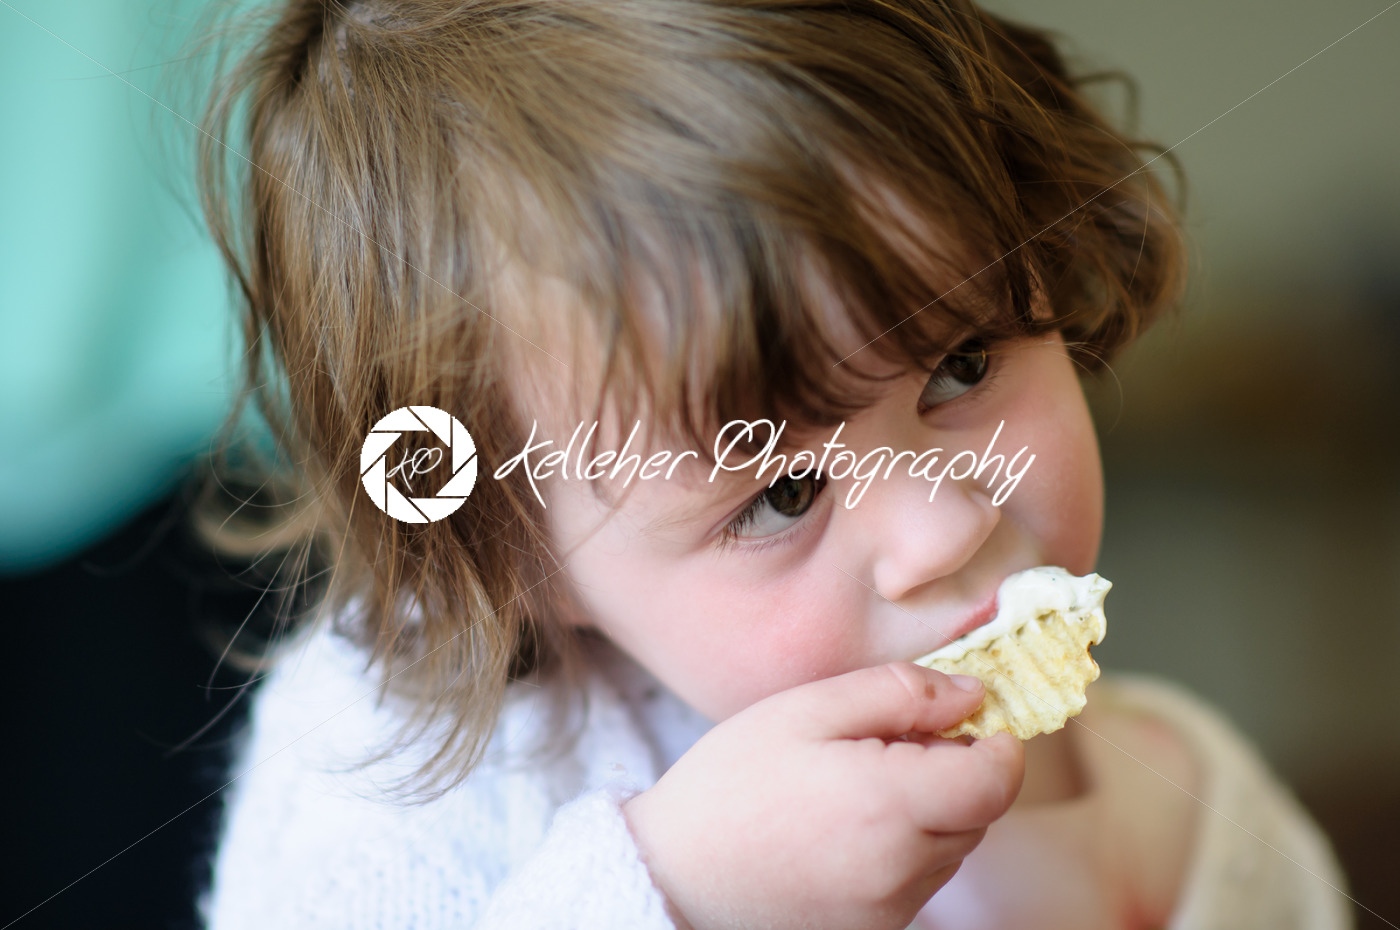 Portrait of a cute little girl inside eating potato chip with sour cream dip on it - Kelleher Photography Store